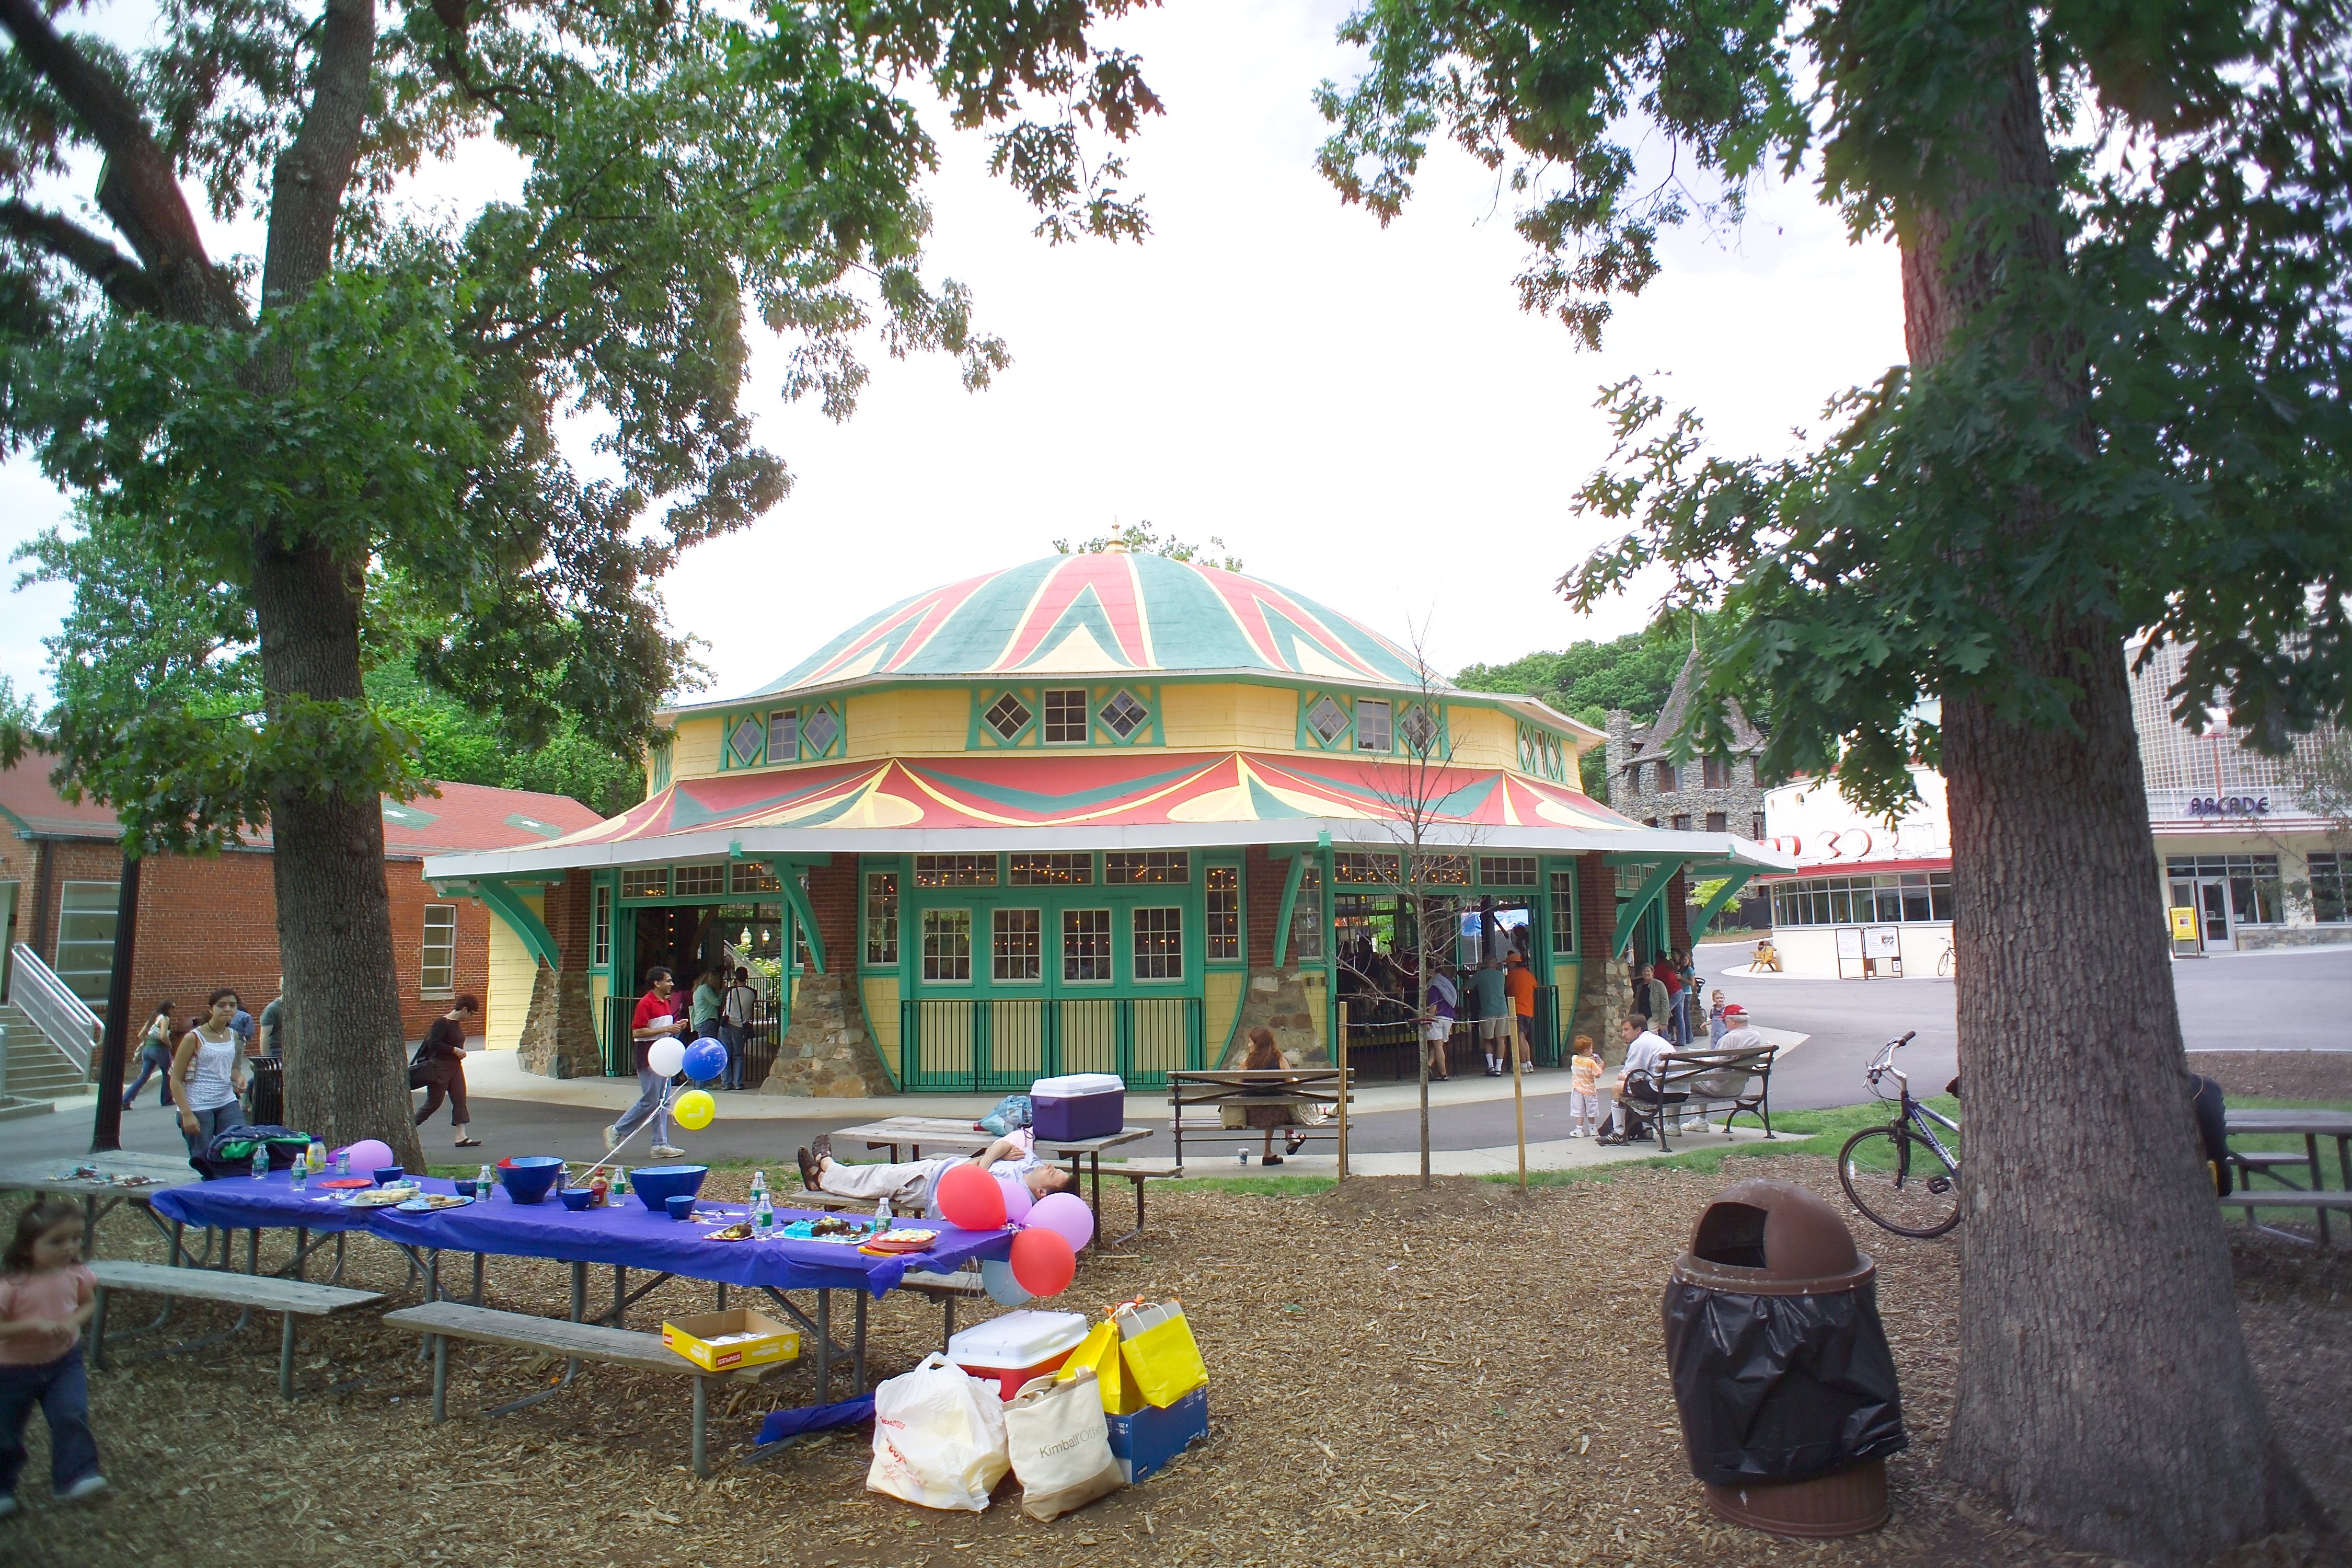 The Dentzel Carousel